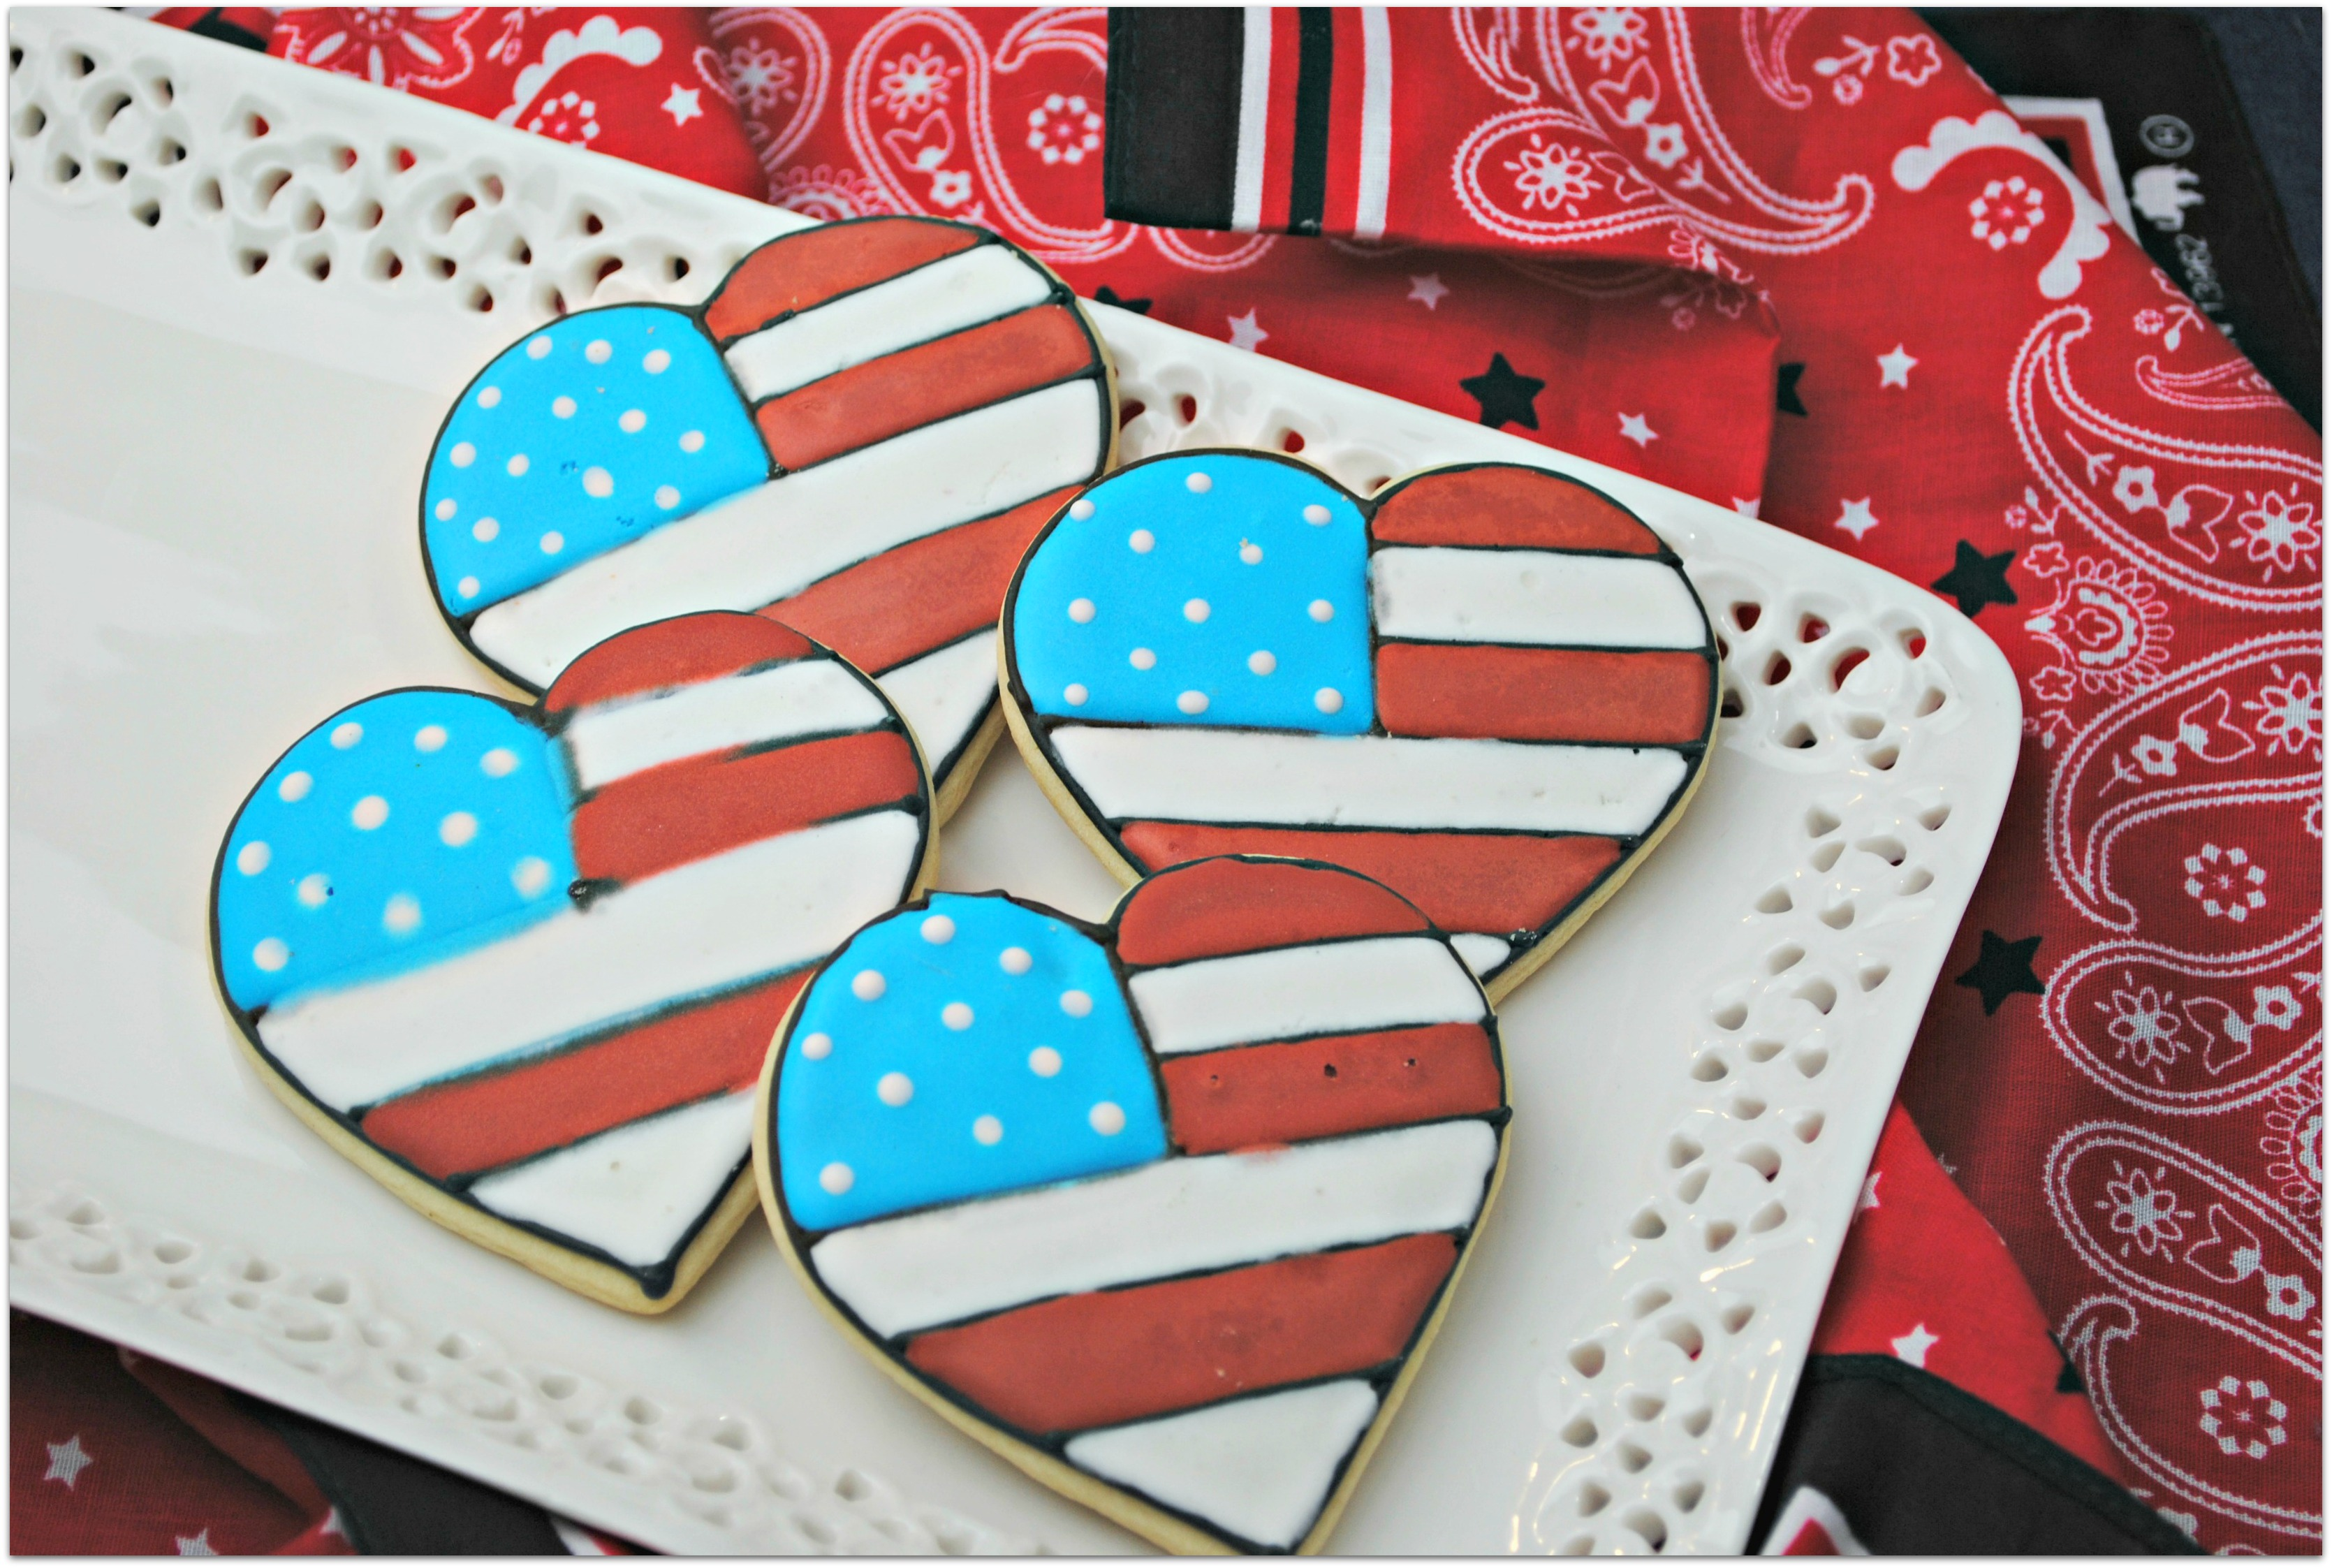 red, white, and blue sugar cookies